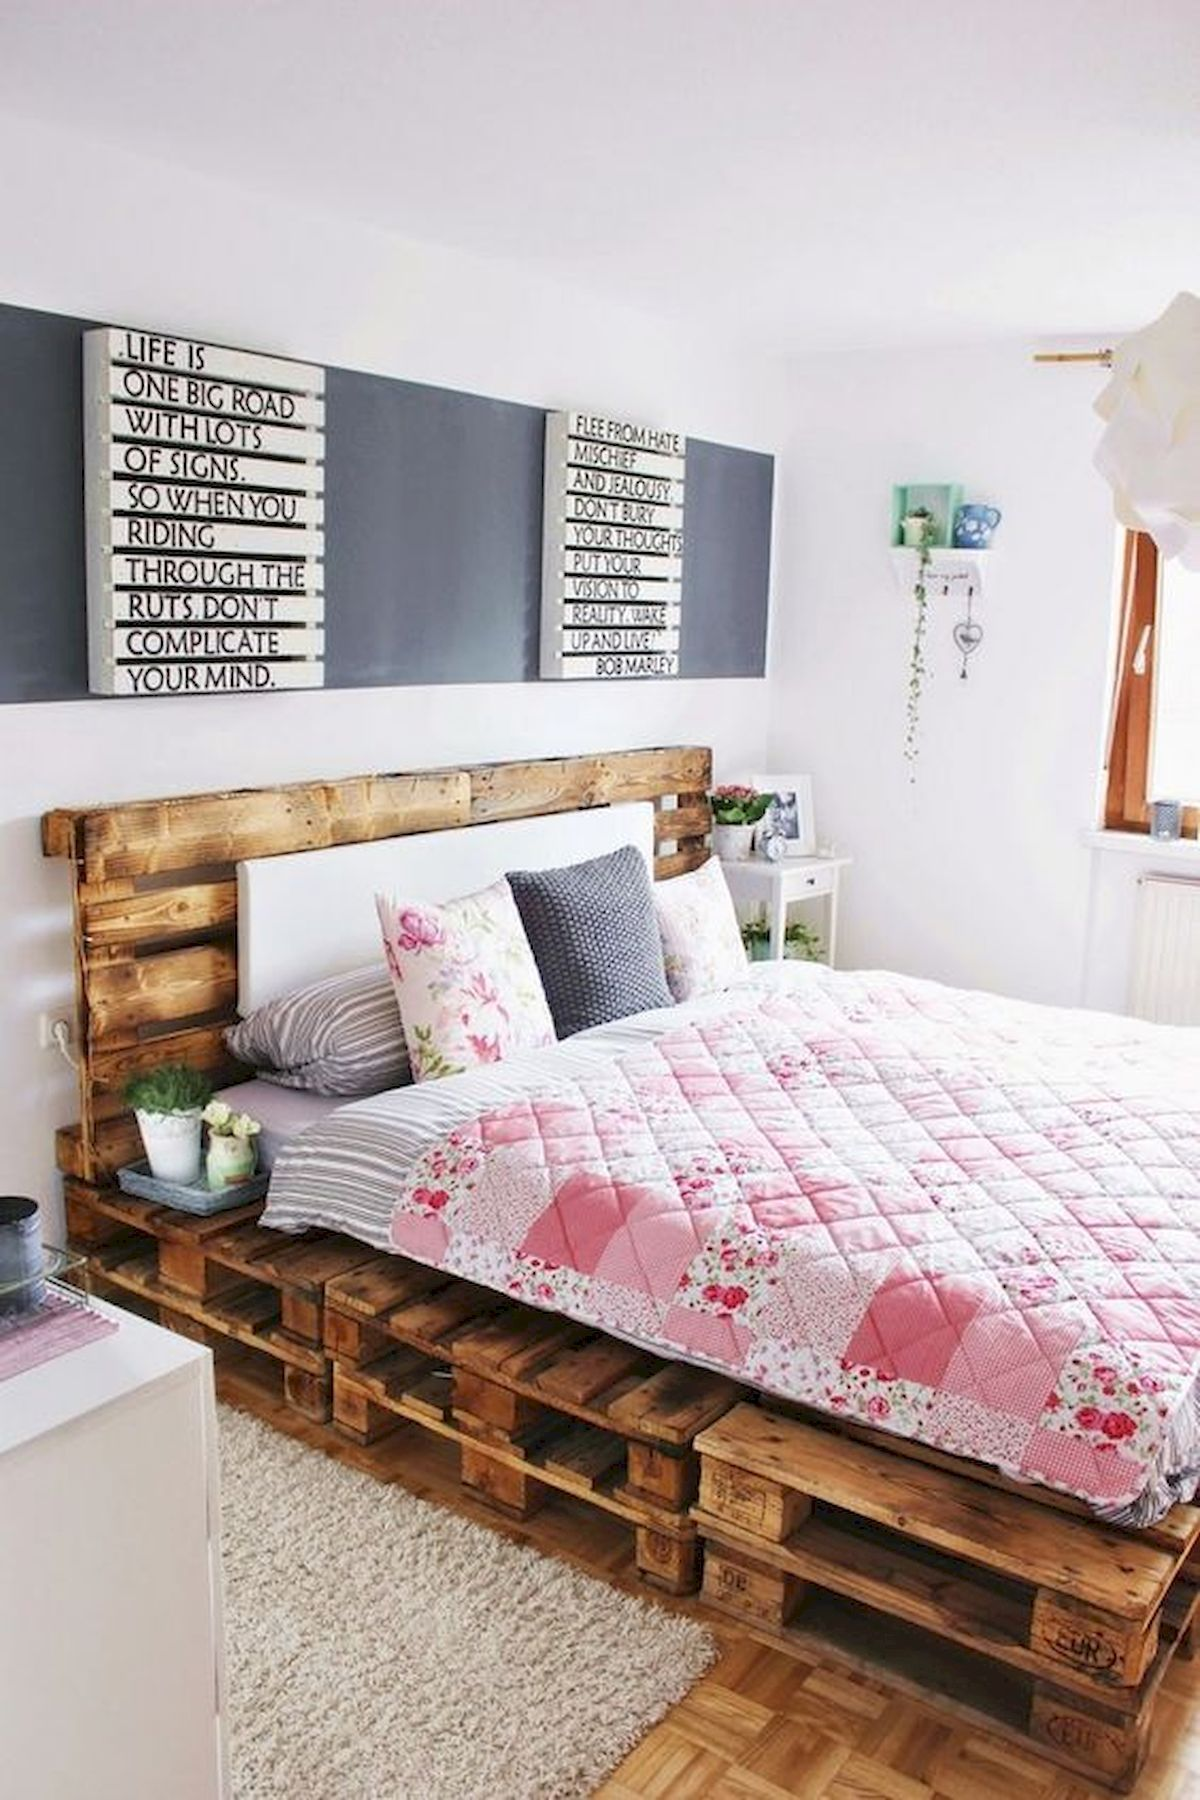 33 Awesome College Bedroom Decor Ideas And Remodel 2 33decor Pallet Furniture Bedroom Bedroom Furniture Design Pallet Furniture Designs